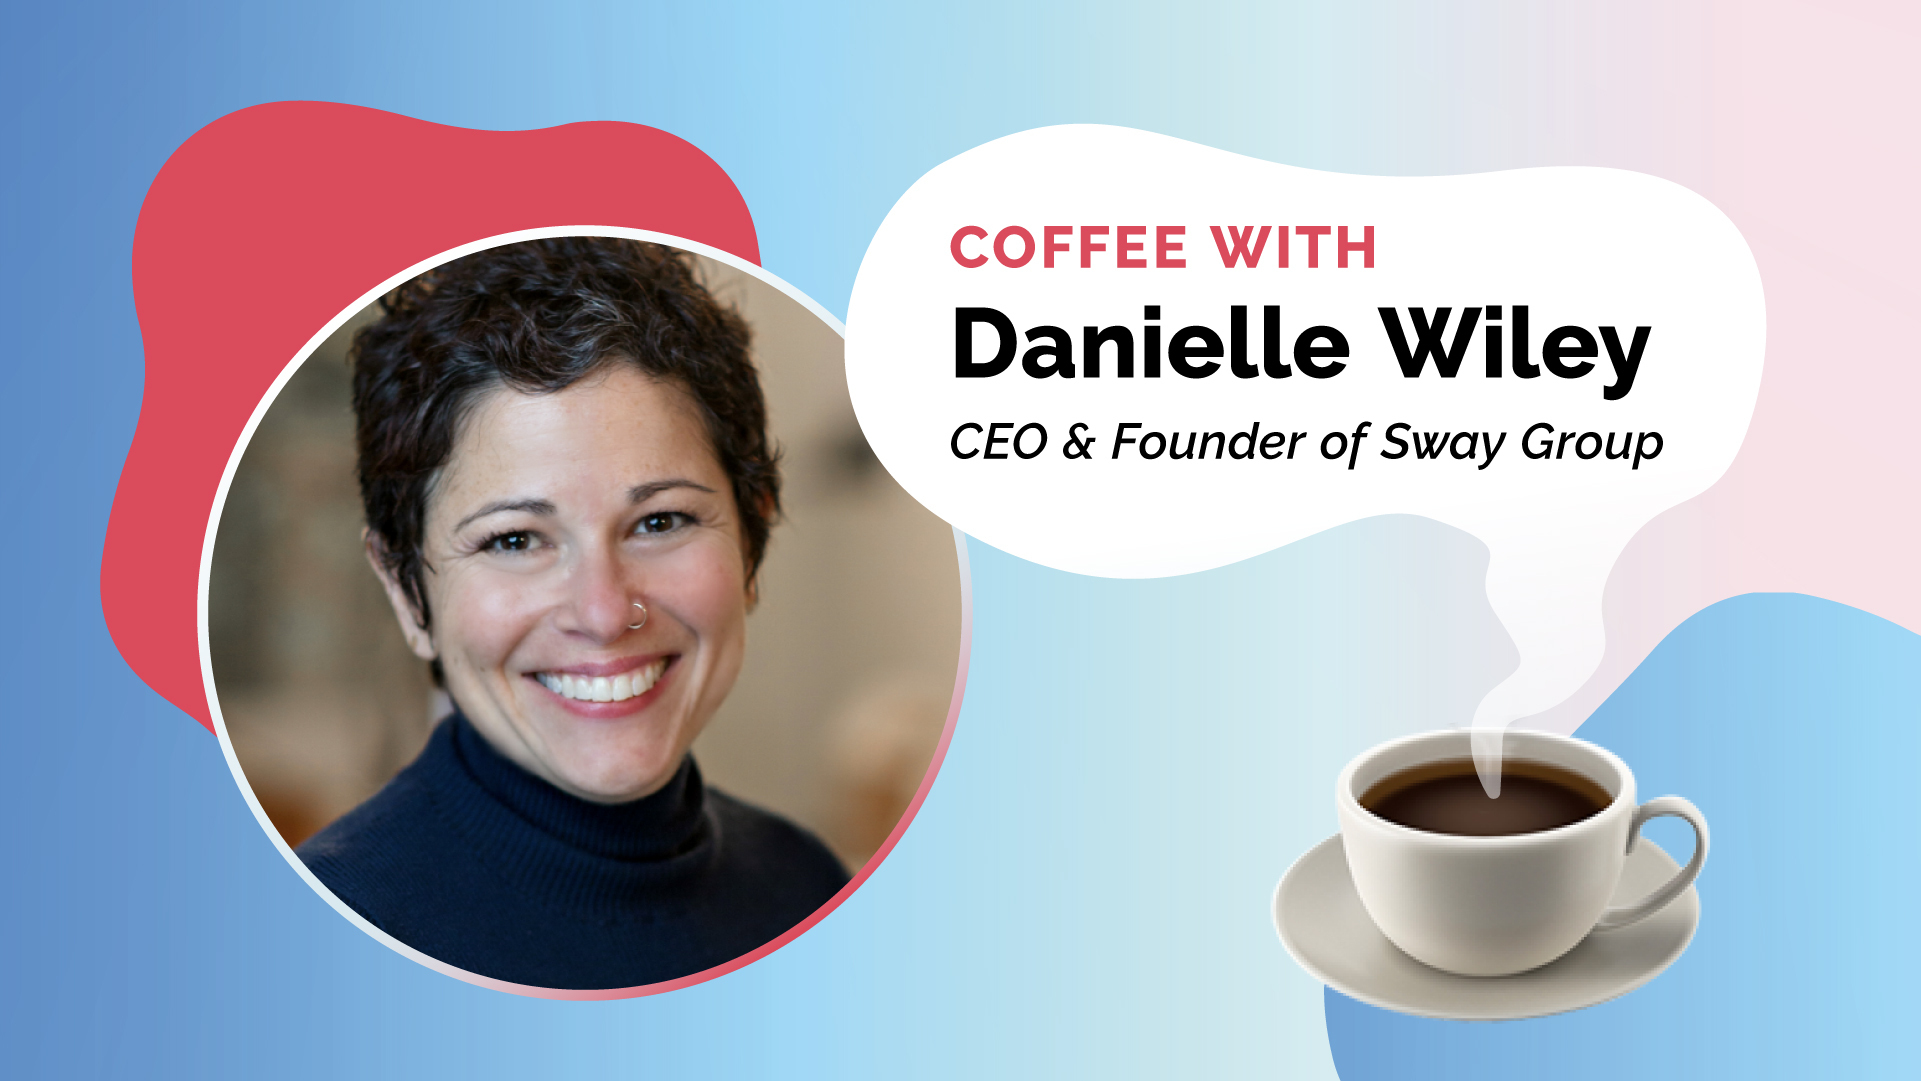 If you ask Danielle Wiley, being a CEO may arguably be easier than being a content creator. As the founder and CEO of Sway Group, an industry-leading influencer marketing agency, Danielle has worked with top brands like Dove, eBay, Staples, CocaCola, and The Honest Company. Hear more about her journey from Digital Marketing Guru to Influencer Agency Founder.